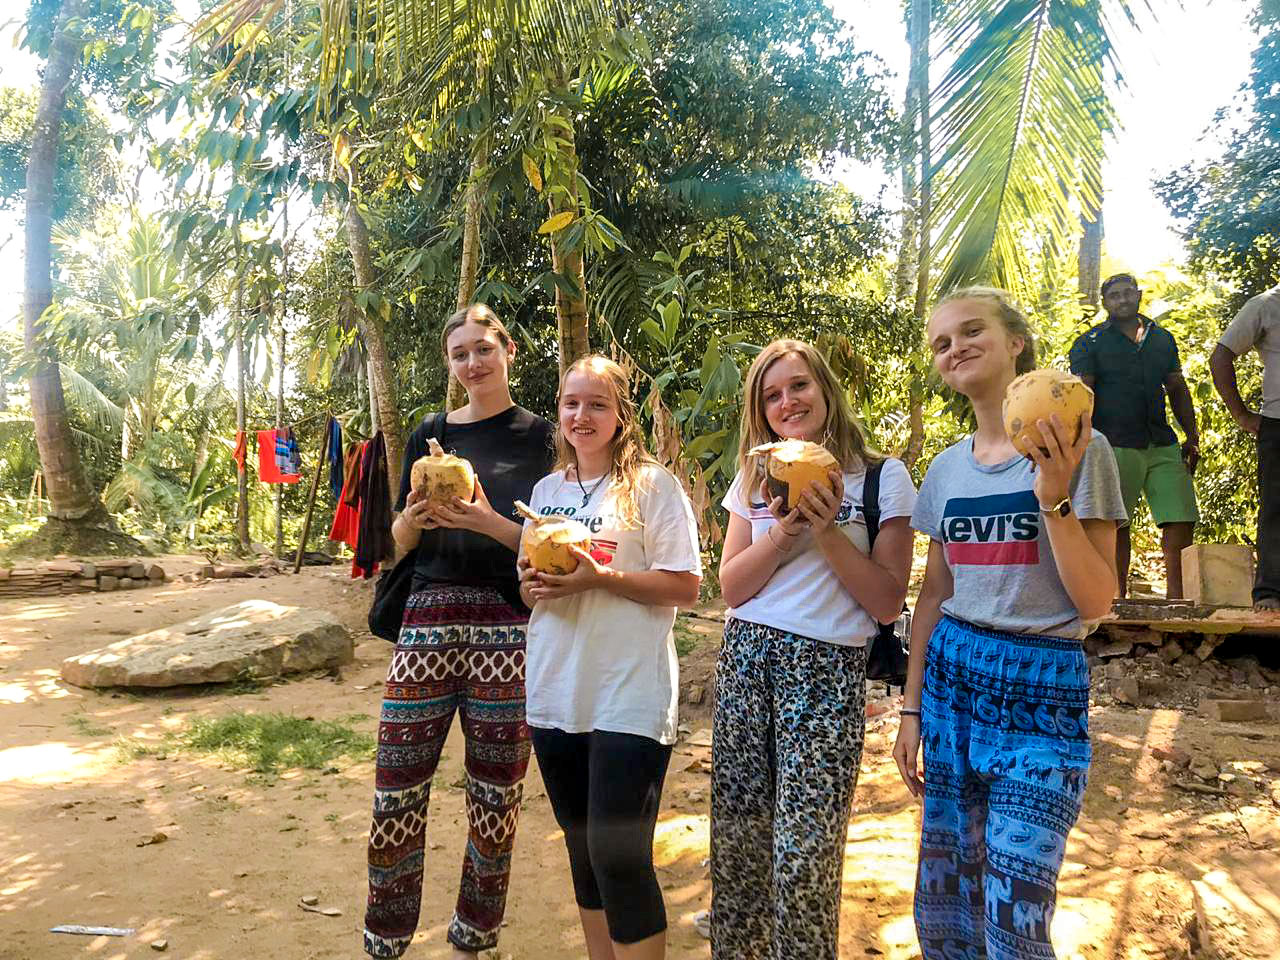 drinking from coconuts in Sri Lanka